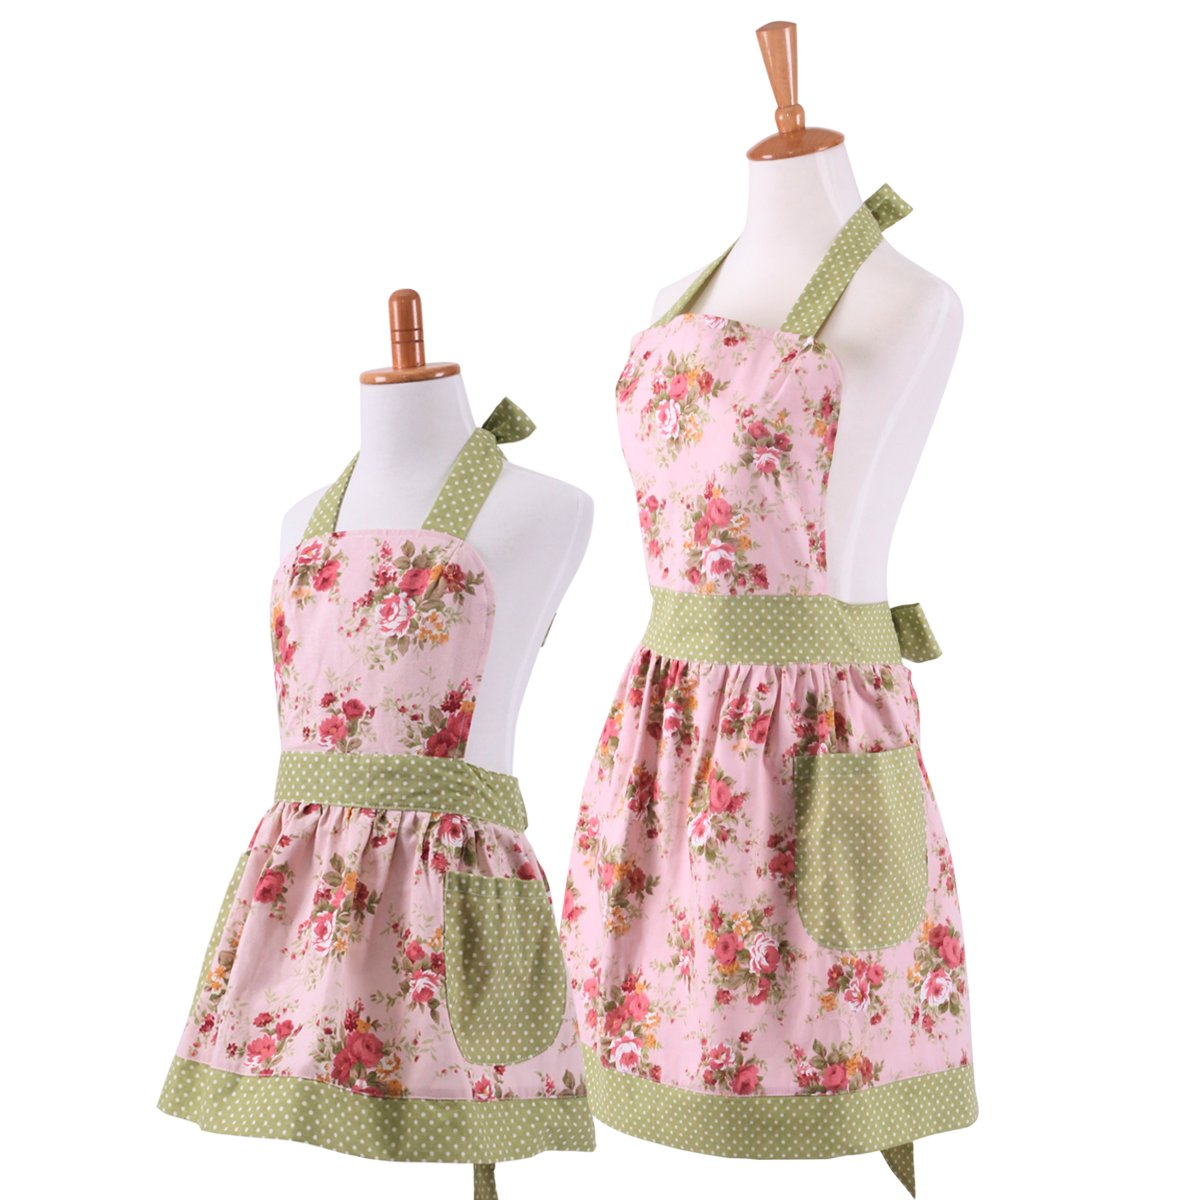 Apron Patterns Old Fashioned